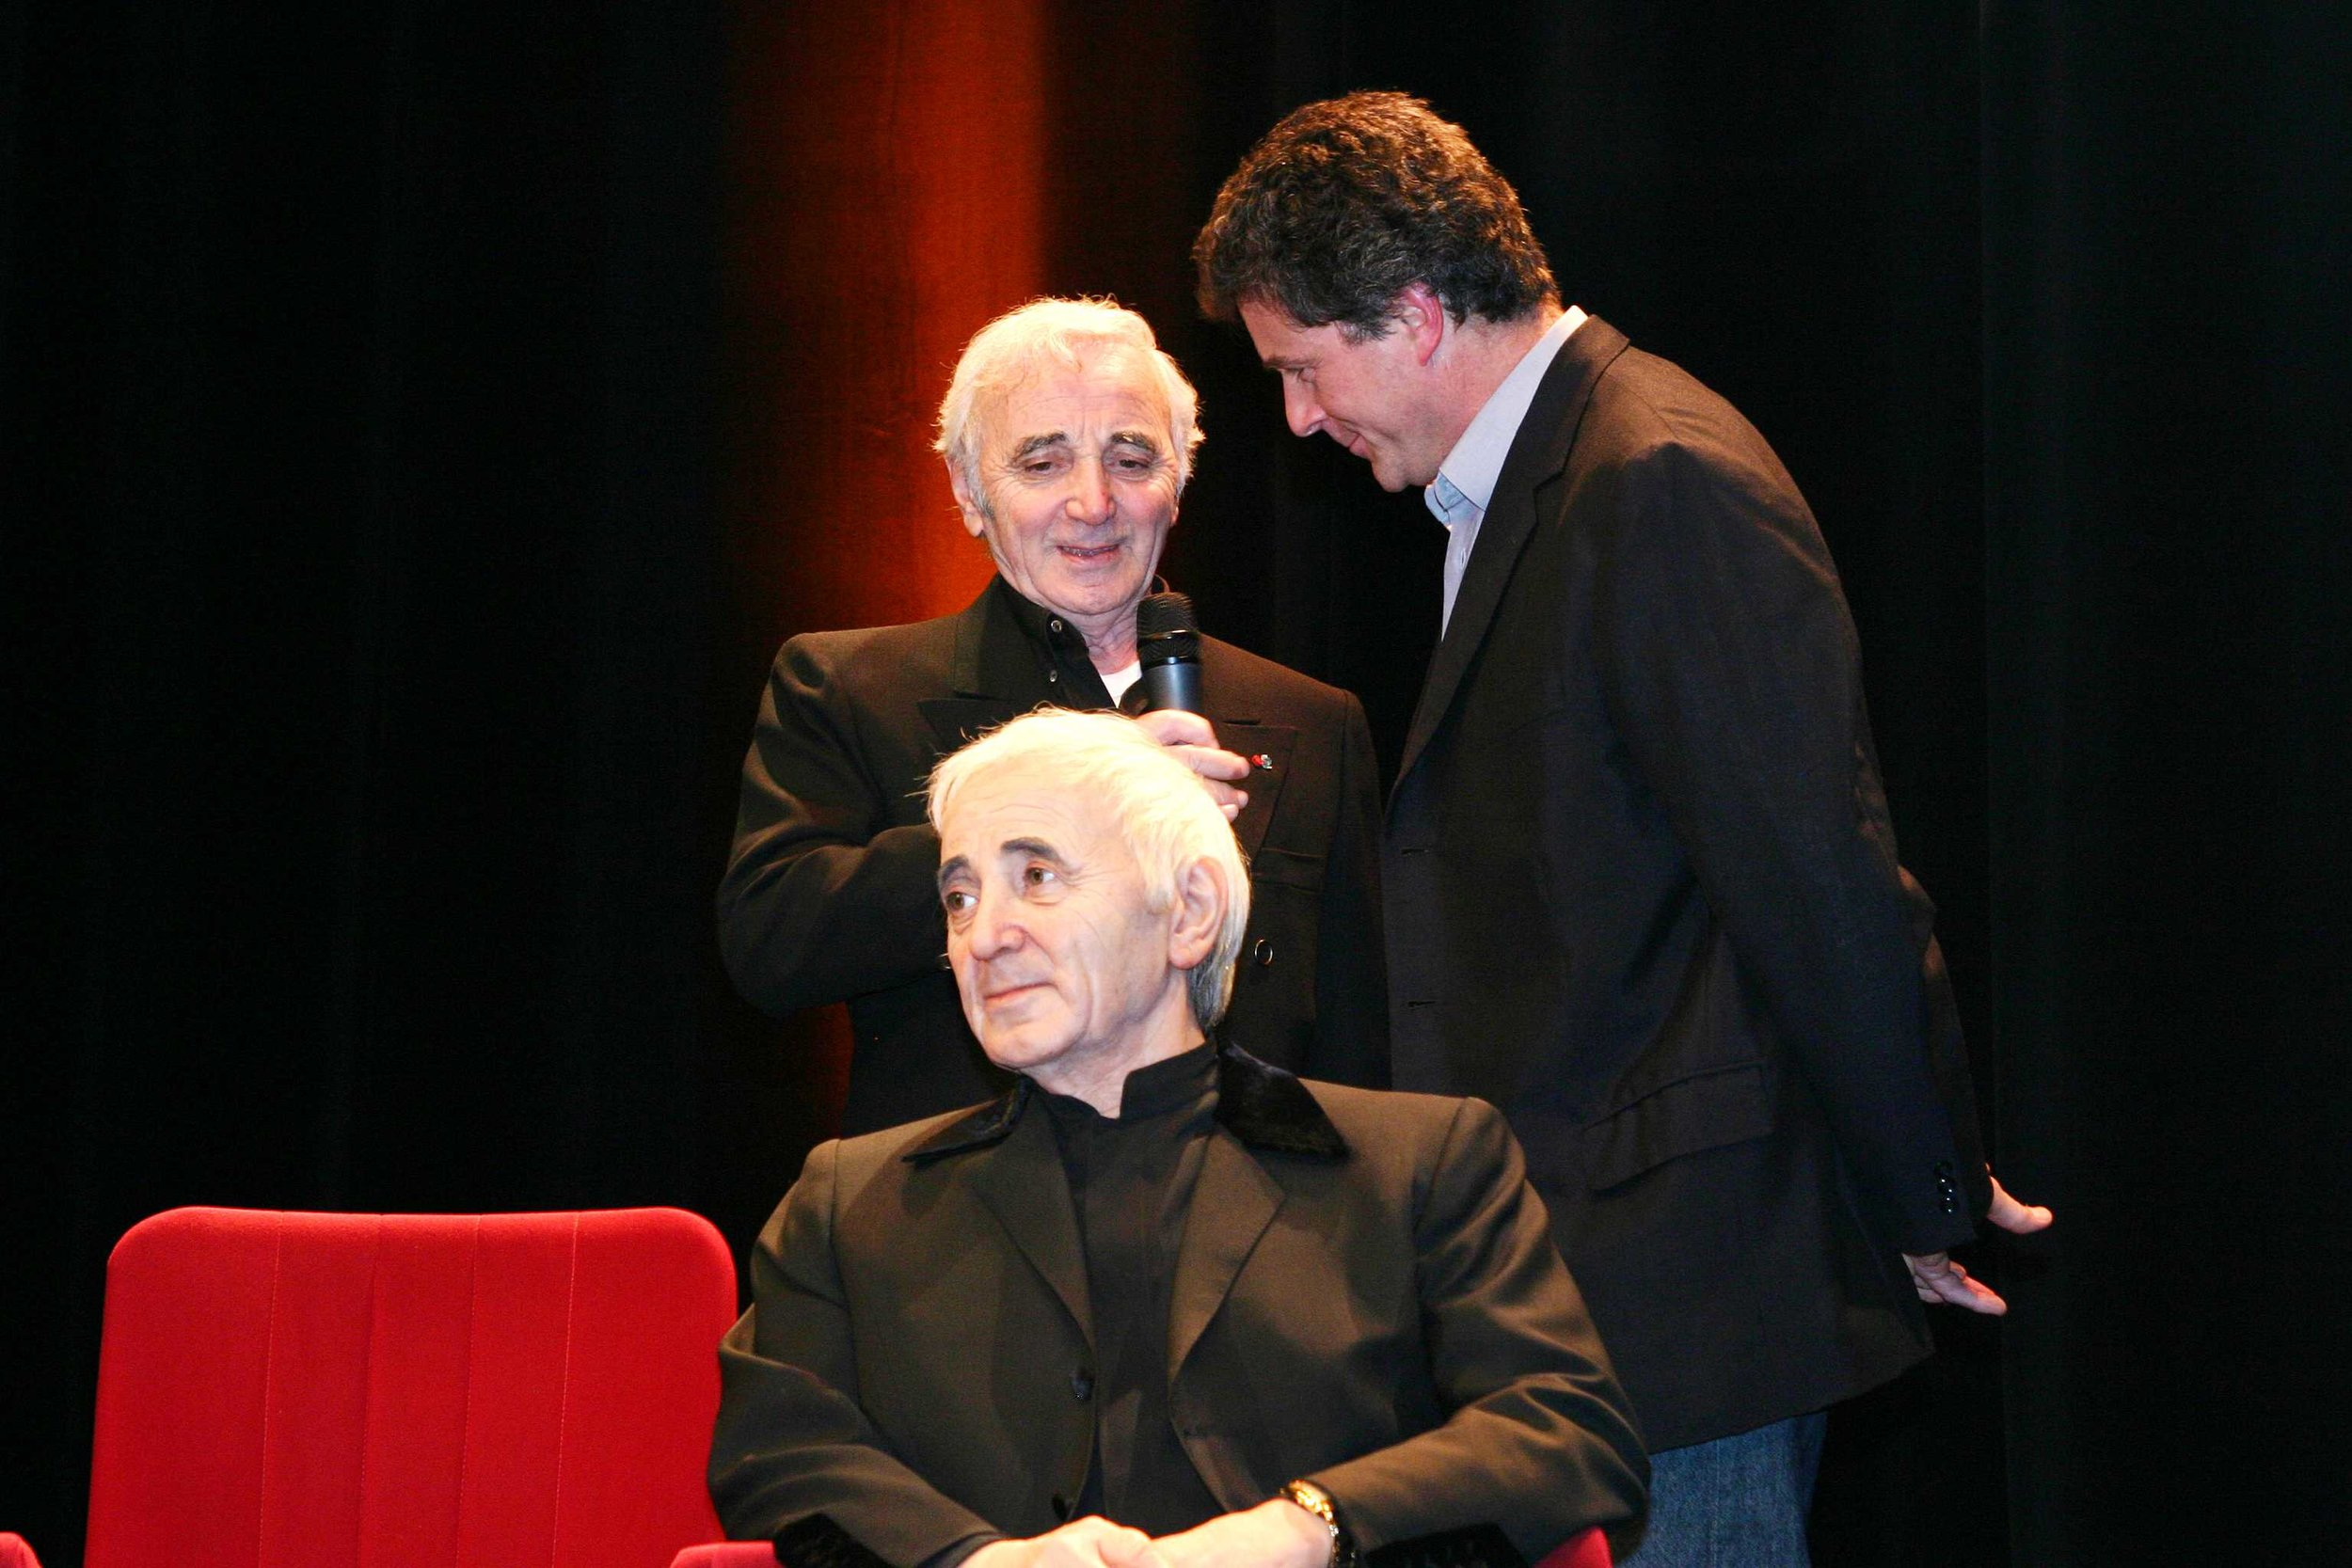 Charles Aznavour, the sculpture and the sculptor - Wax sculpture - Modelling by Eric Saint Chaffray - Credit Musée Grévin